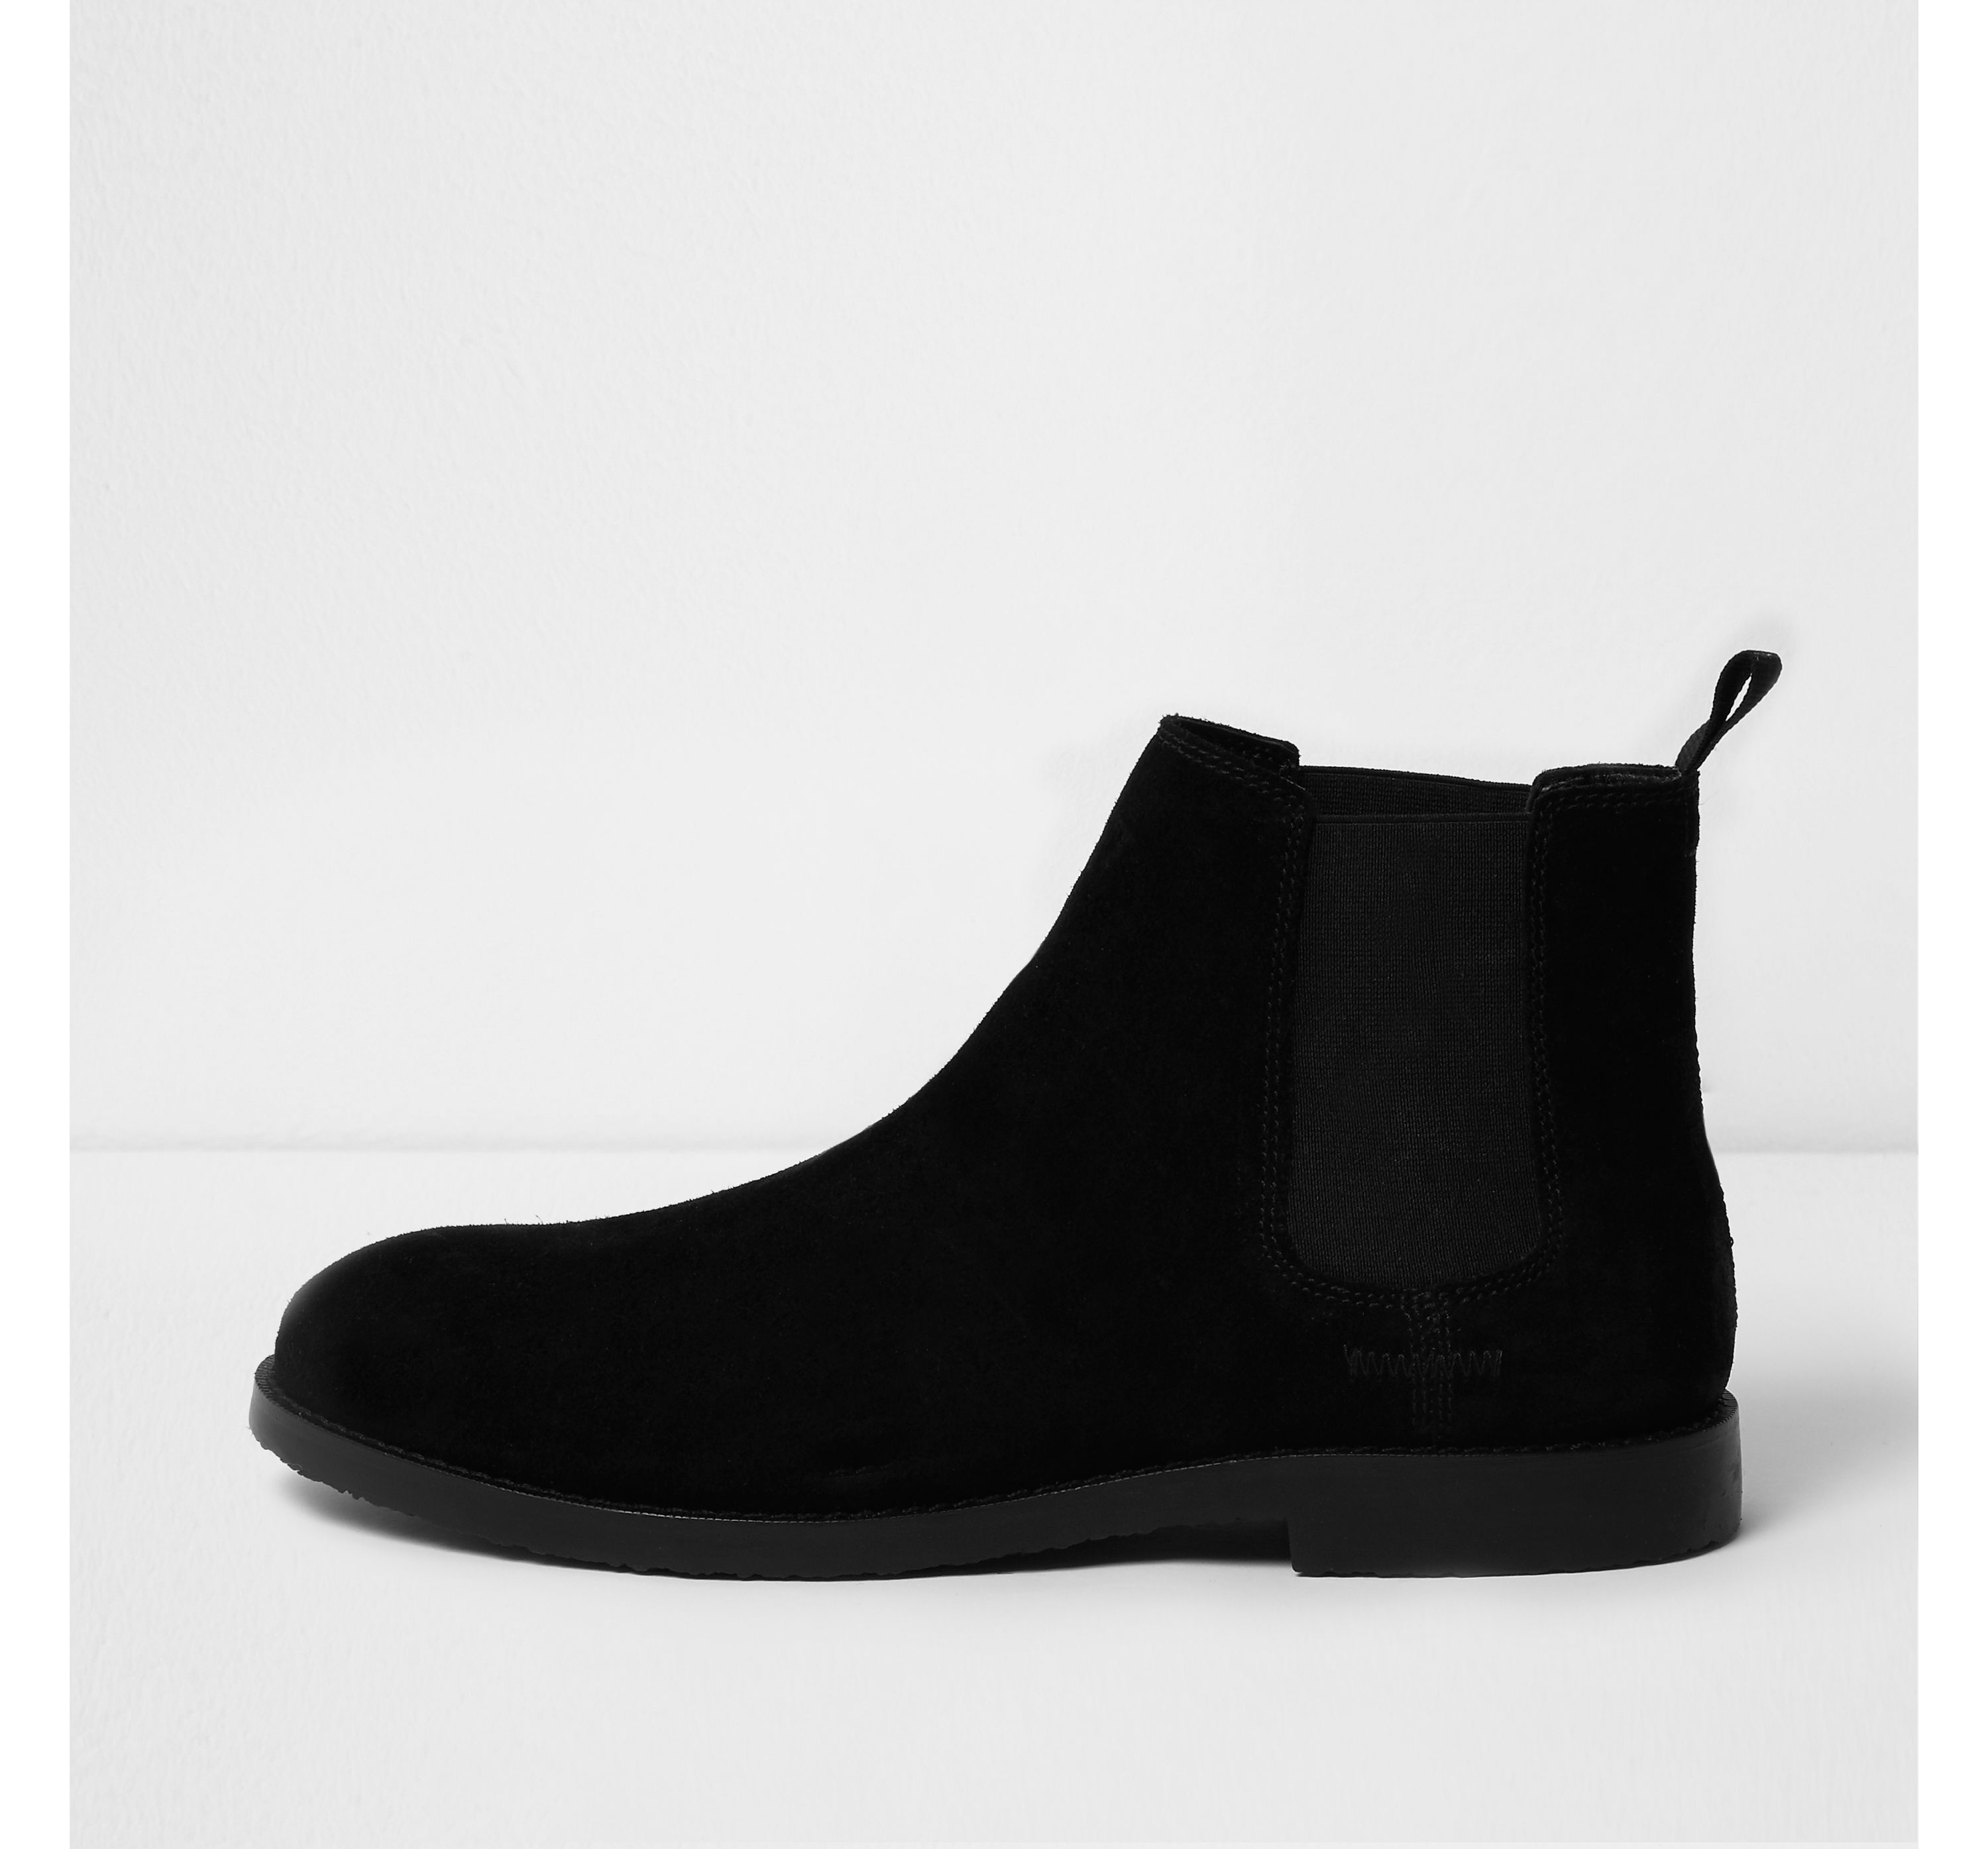 6ae16c22260 Mens Black suede chelsea boots by River Island